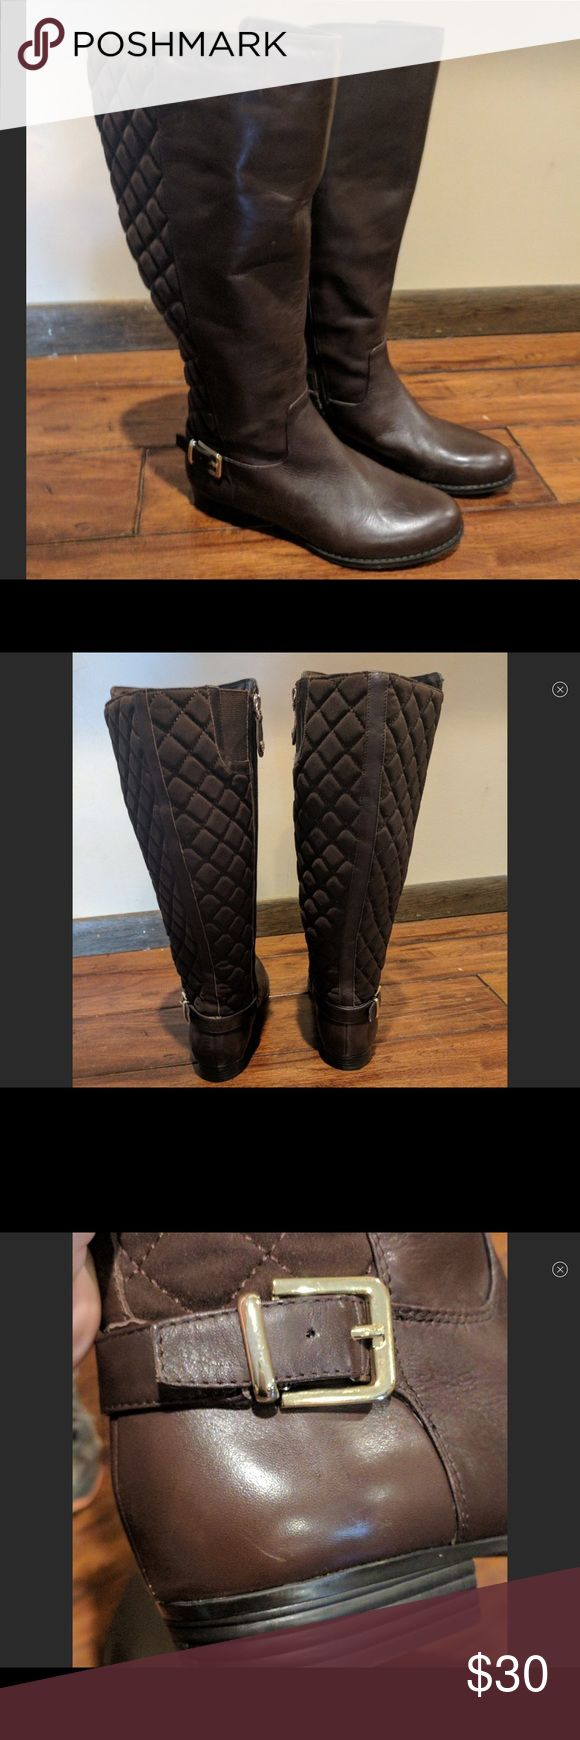 """Isaac Mizrahi Quilted Riding Boots Wide With chic quilted textile detail on the back, these boots make anything you're wearing that much more fabulous. Riding boot style; tall shaft with quilted textile detail on back; goldtone faux buckle hardware detail on outside of shaft; side-entry zipper closure Approximate measurements: Heel 1""""H; Shaft 15-1/2""""H; Wide calf circumference 17""""-18"""" These were purchased new on poshmark and worn once and are too big for me, I fluctuate brands/sizes. These…"""